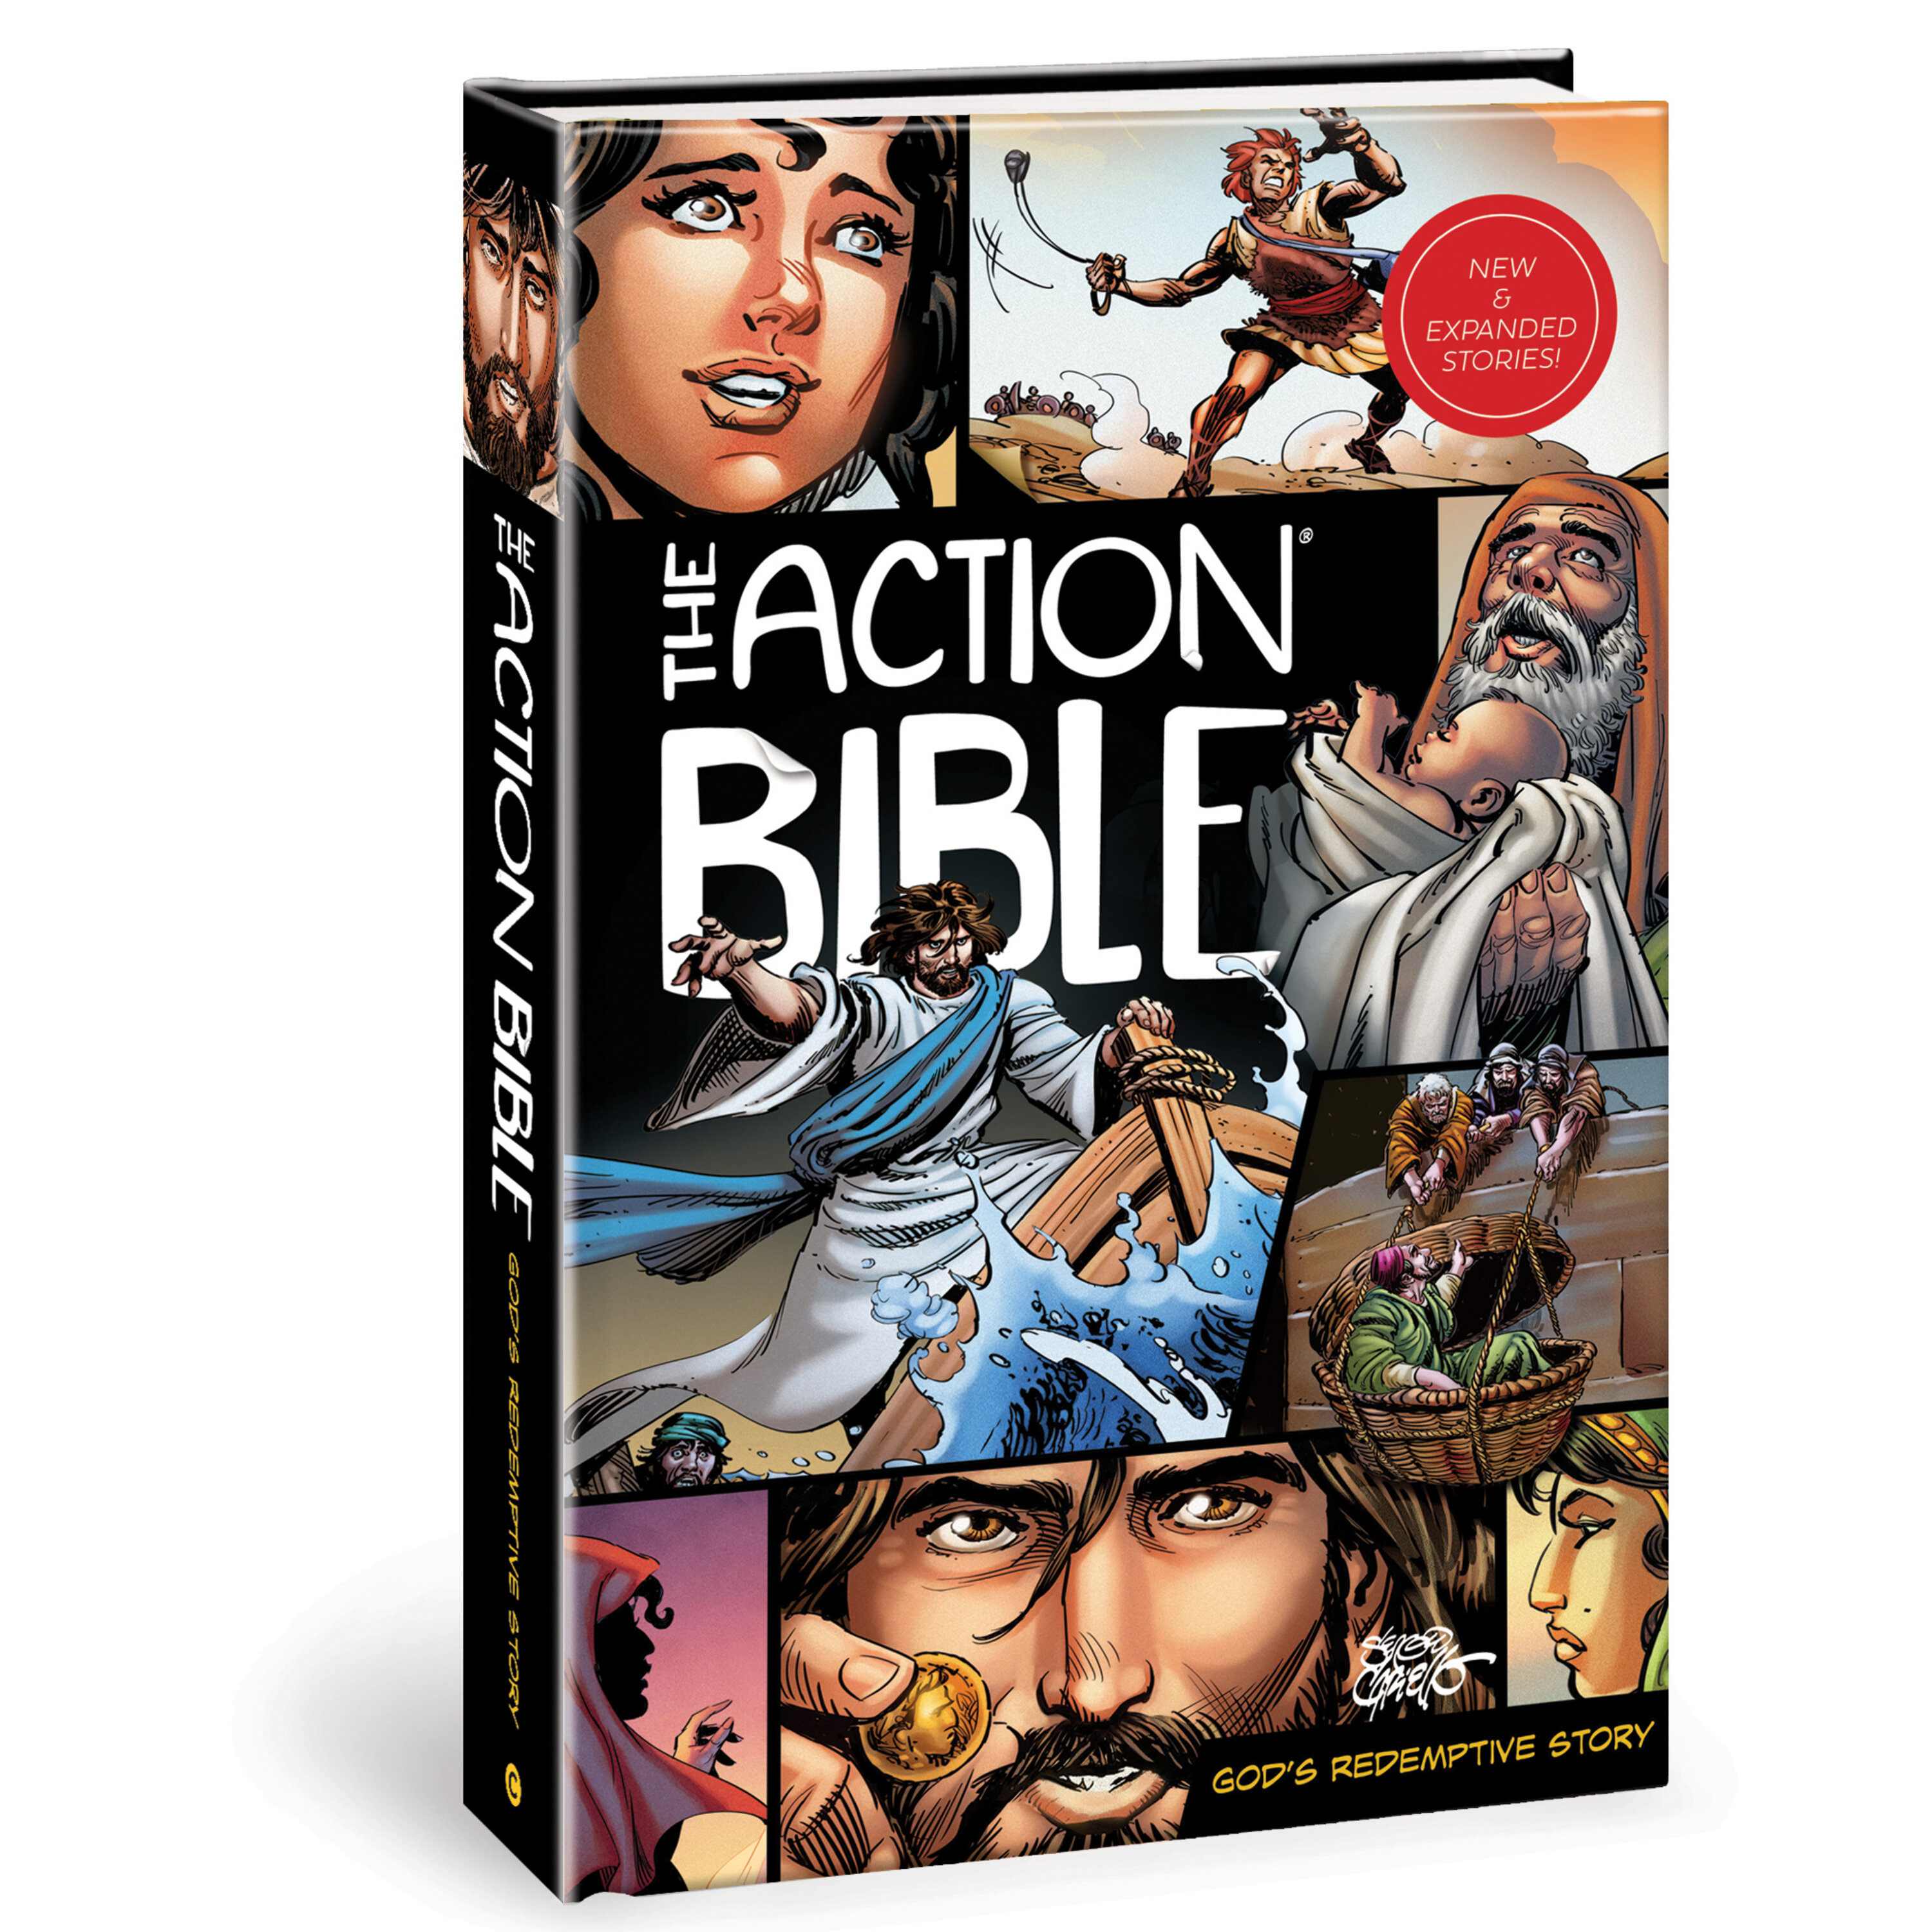 The Action Bible - Part II with Sergio Cariello